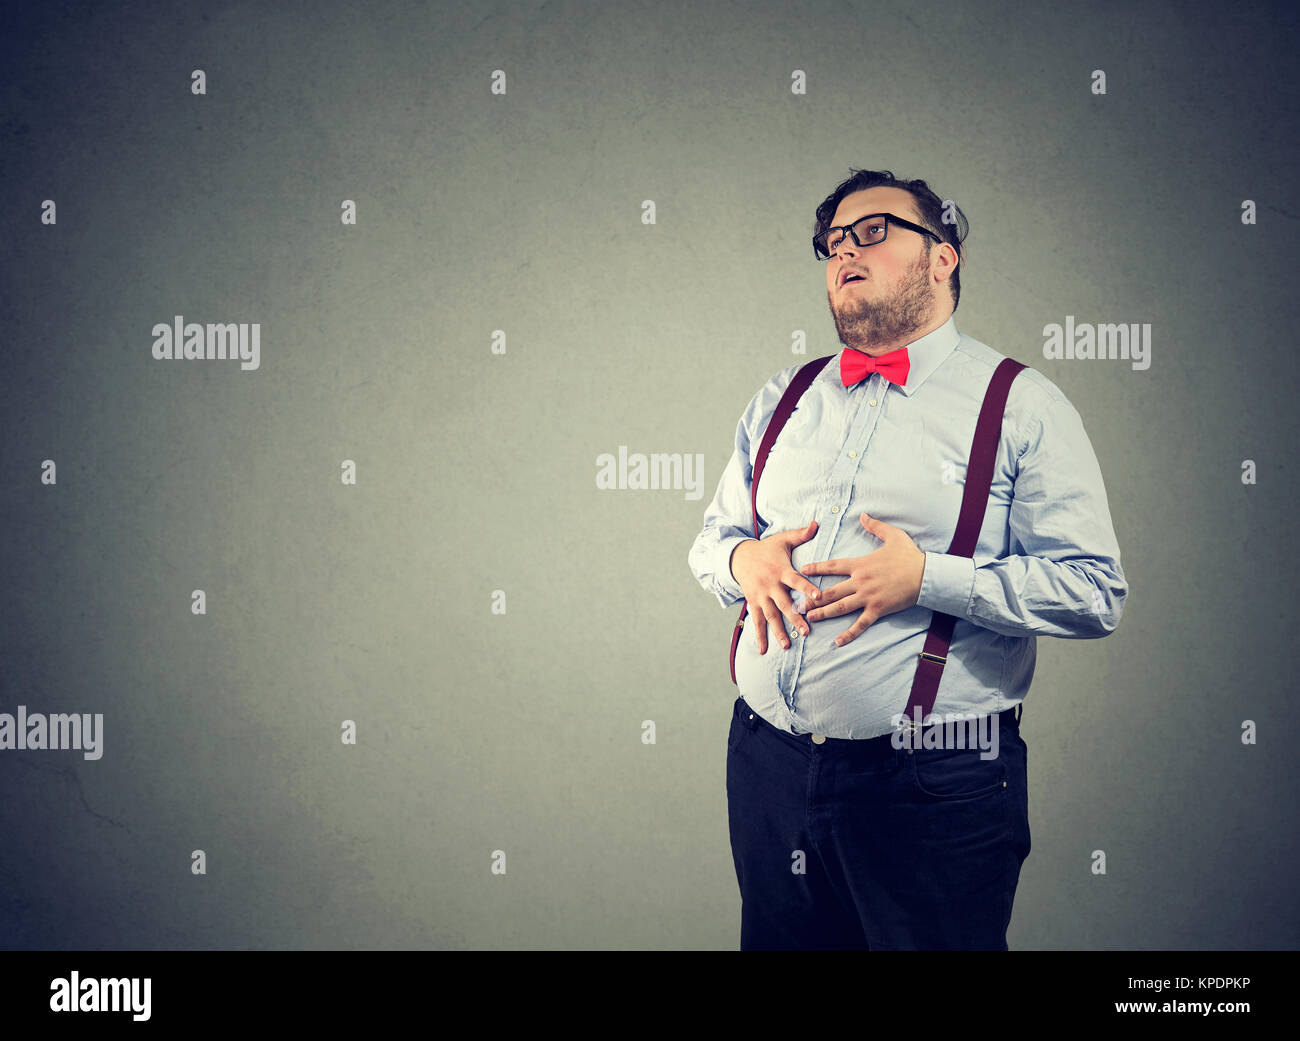 Irritated man with overweight wearing glasses and formal clothing having digestive trouble. - Stock Image